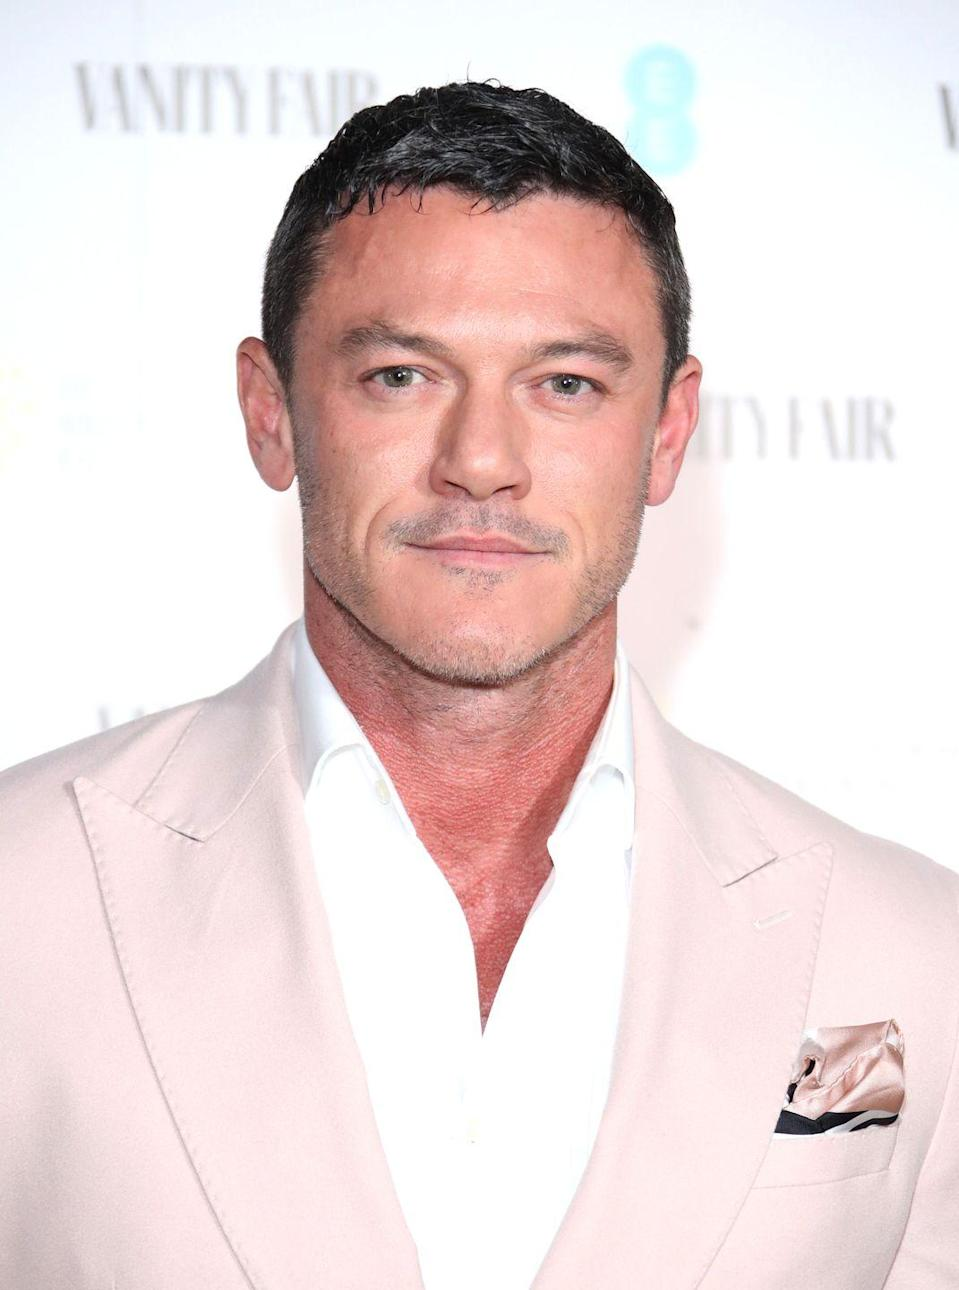 <p>Evans did not return for the most recent <em>Fast and Furious</em> film, but he's definitely been busy. He is currently starring on the hit television show <em>The Alienist</em> and has multiple movies in the works. </p>